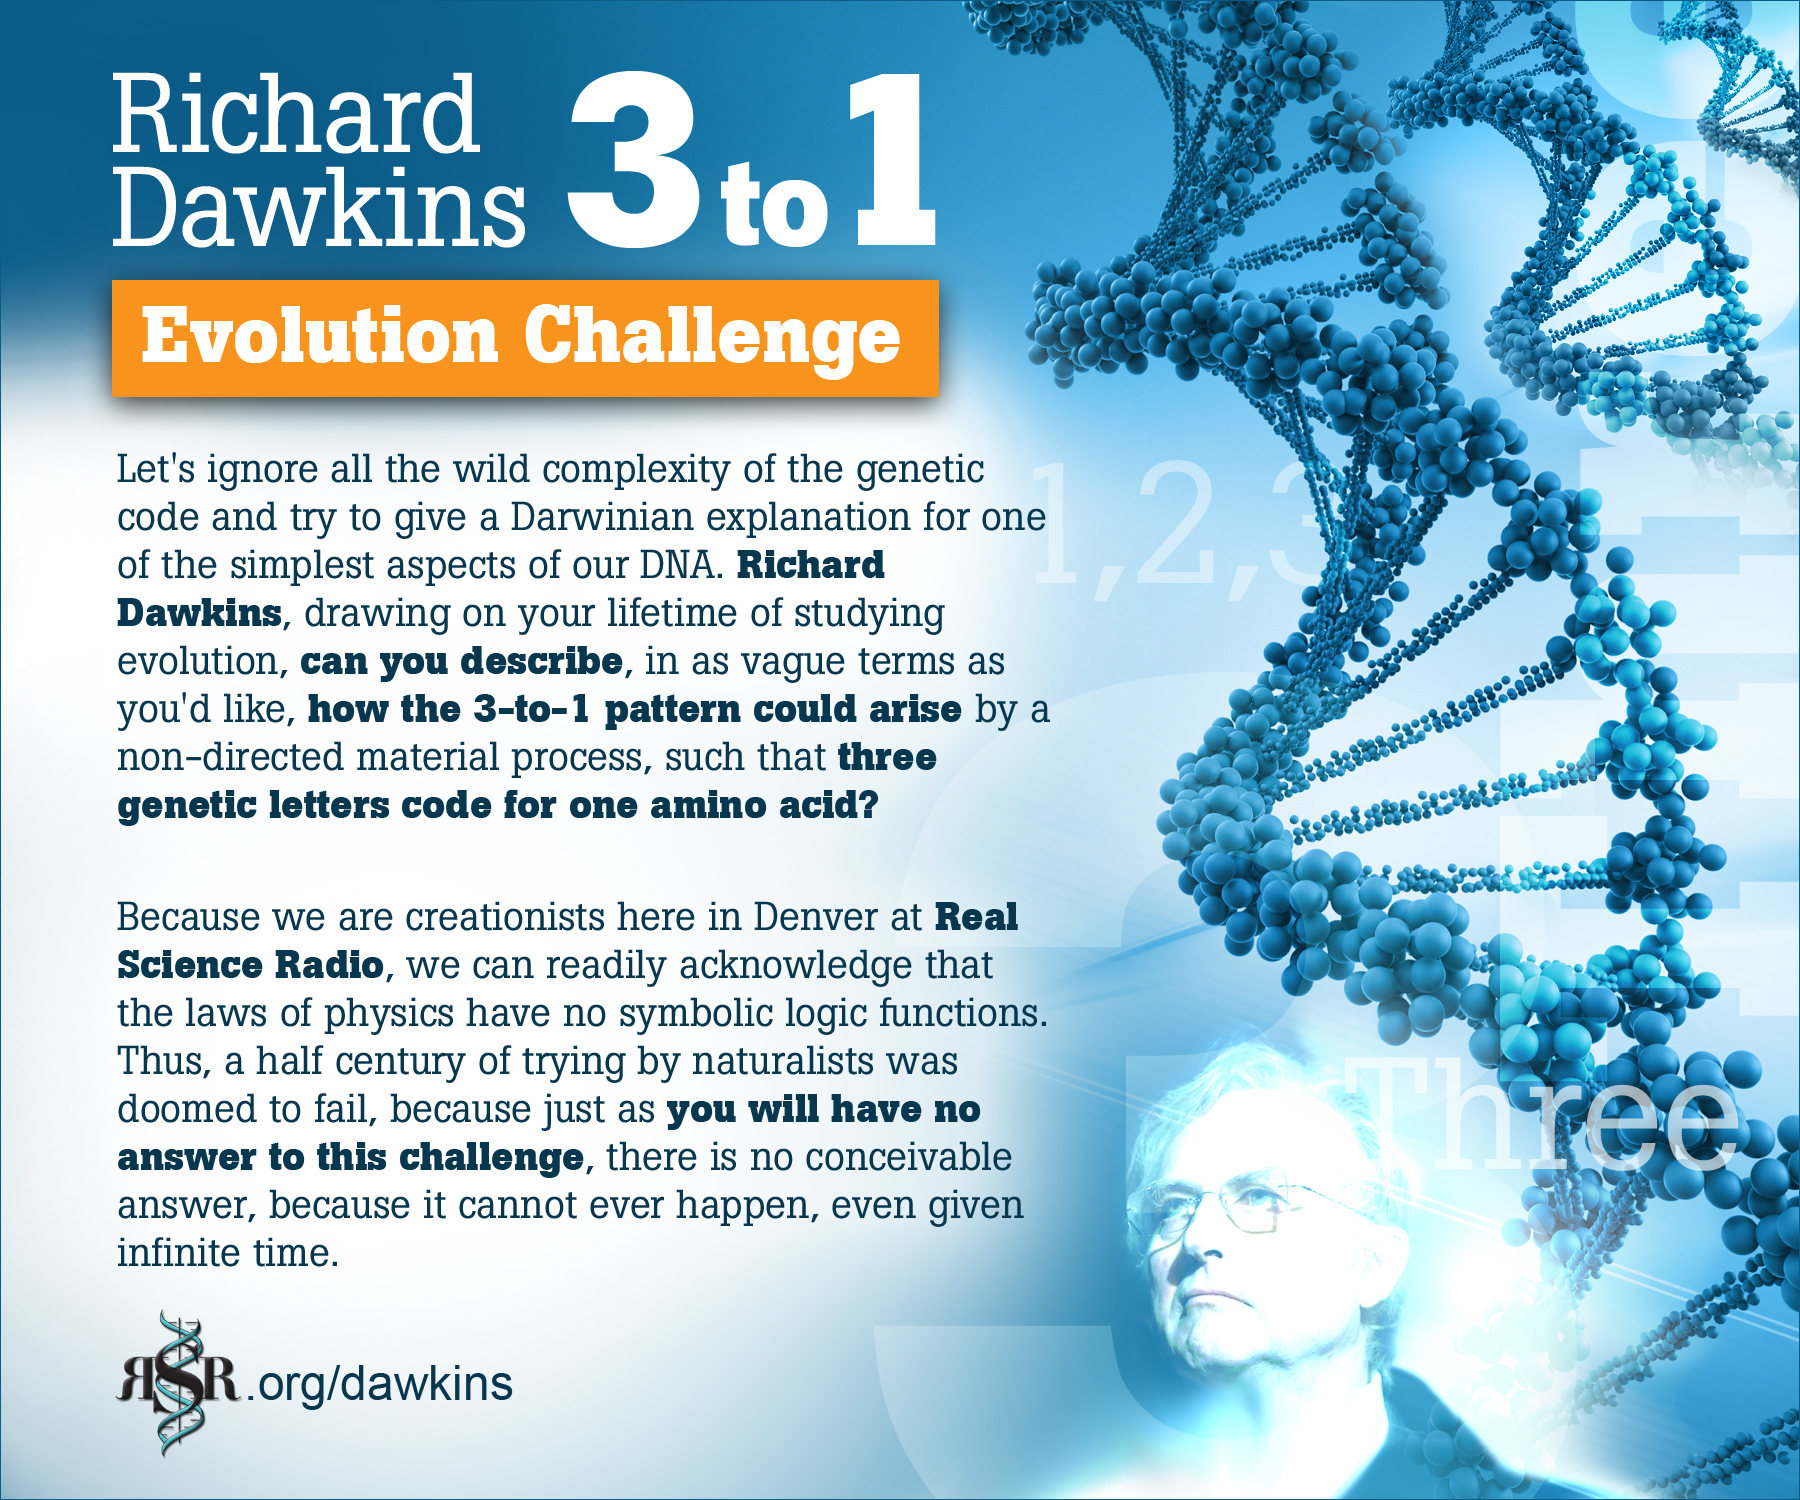 Bob Enyart's 3-to-1 DNA challenge to Richard Dawkins or any evolutionist